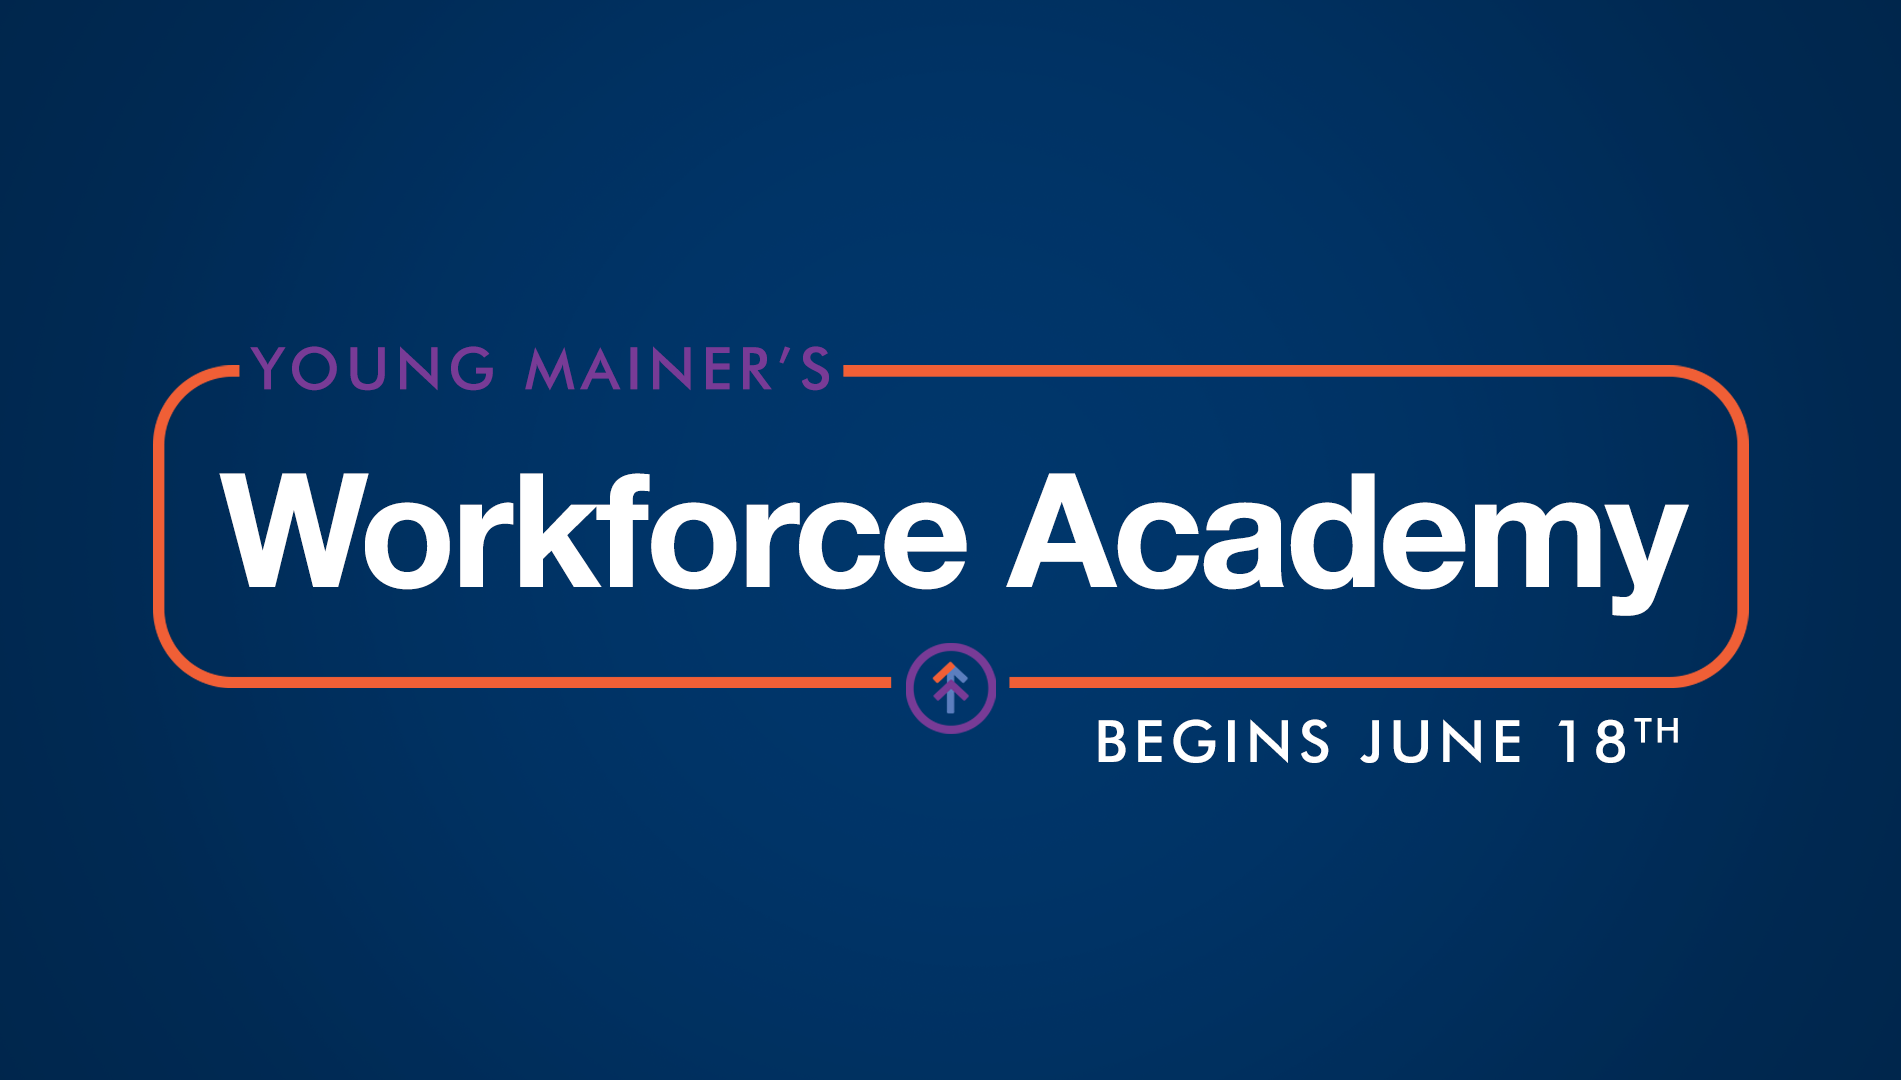 Eastern Maine Development Corporation Reimagines Workforce Training   to Expand Opportunities for Job Seekers and Meet the Needs of Employers